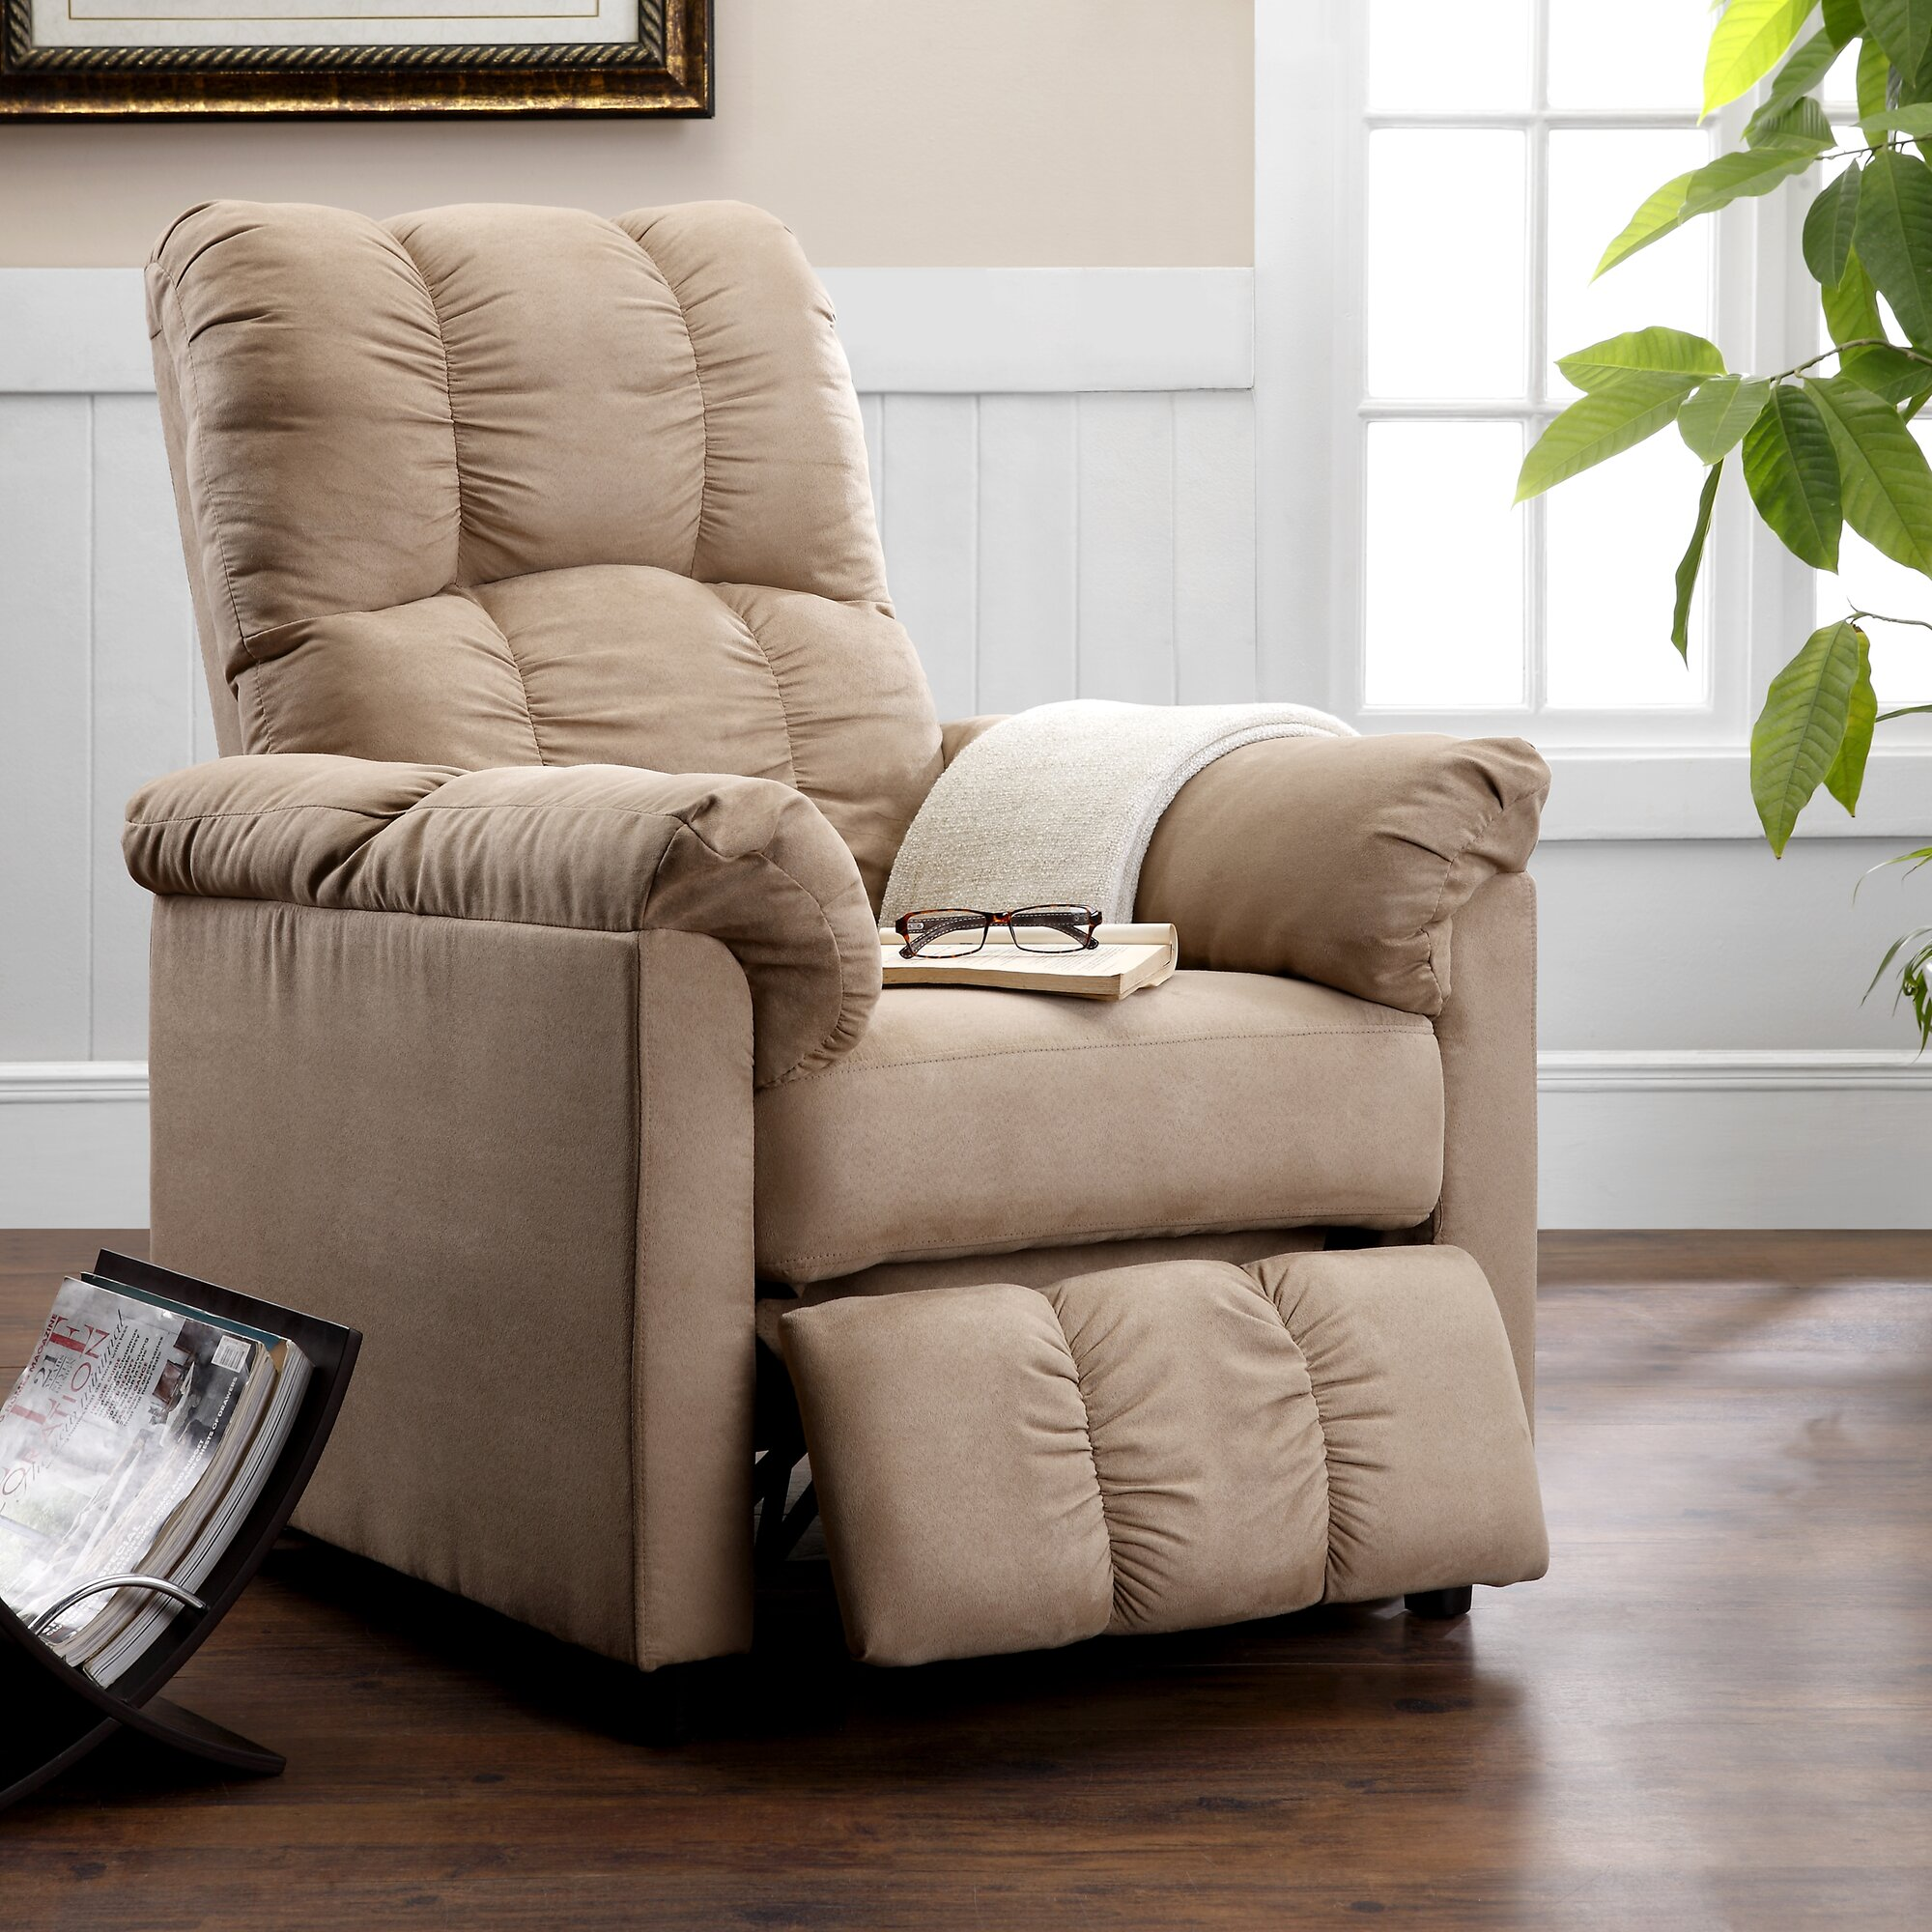 Emejing Apartment Size Recliners Gallery - Jackandgingers.co ...